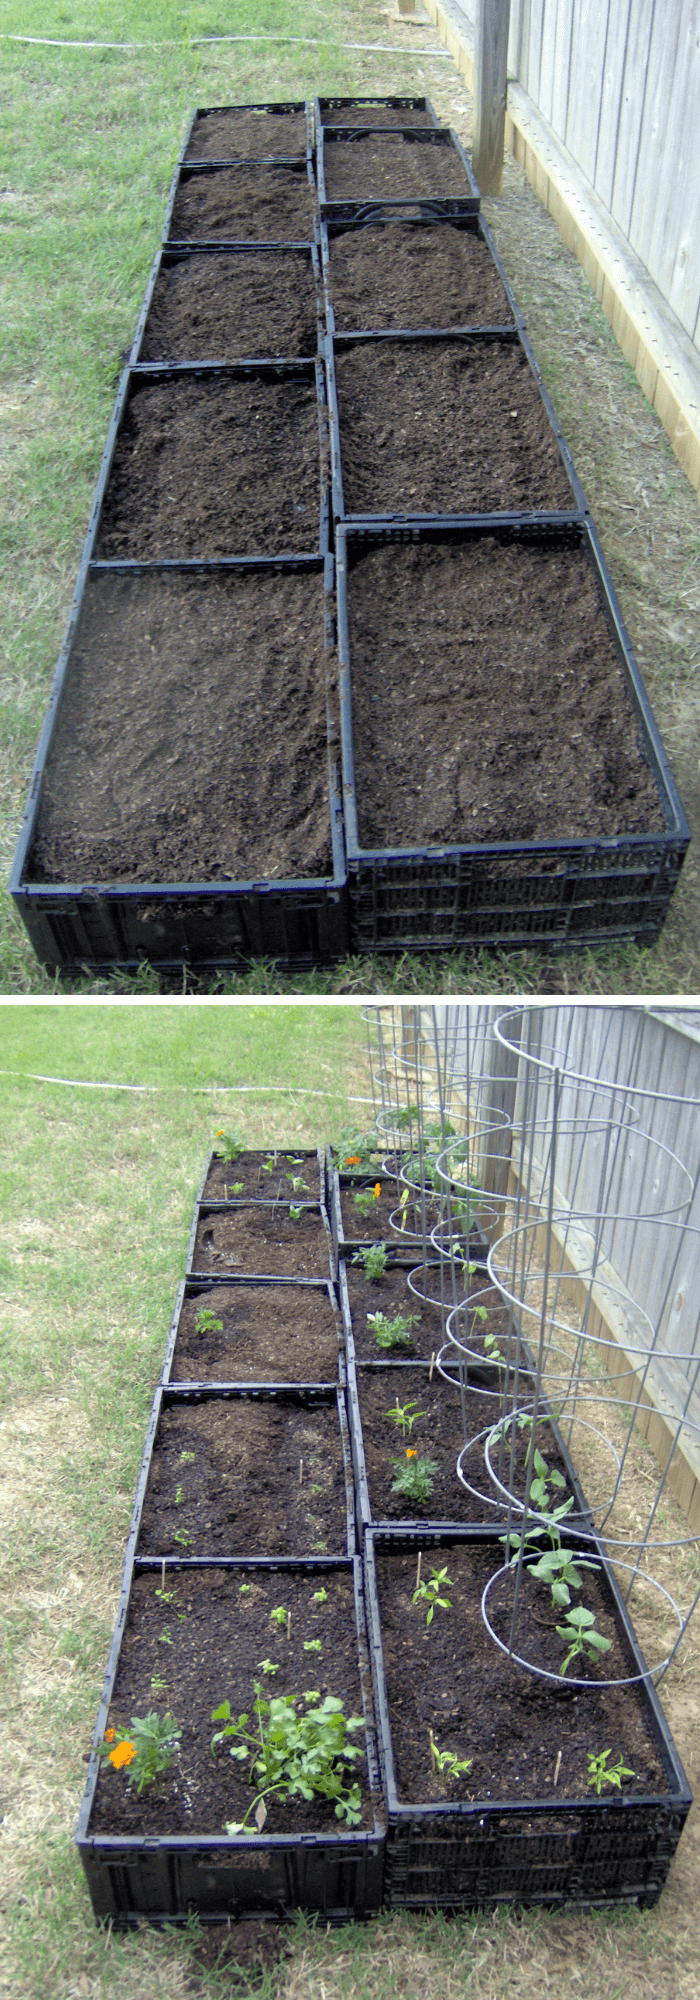 Square food garden with plastic crates